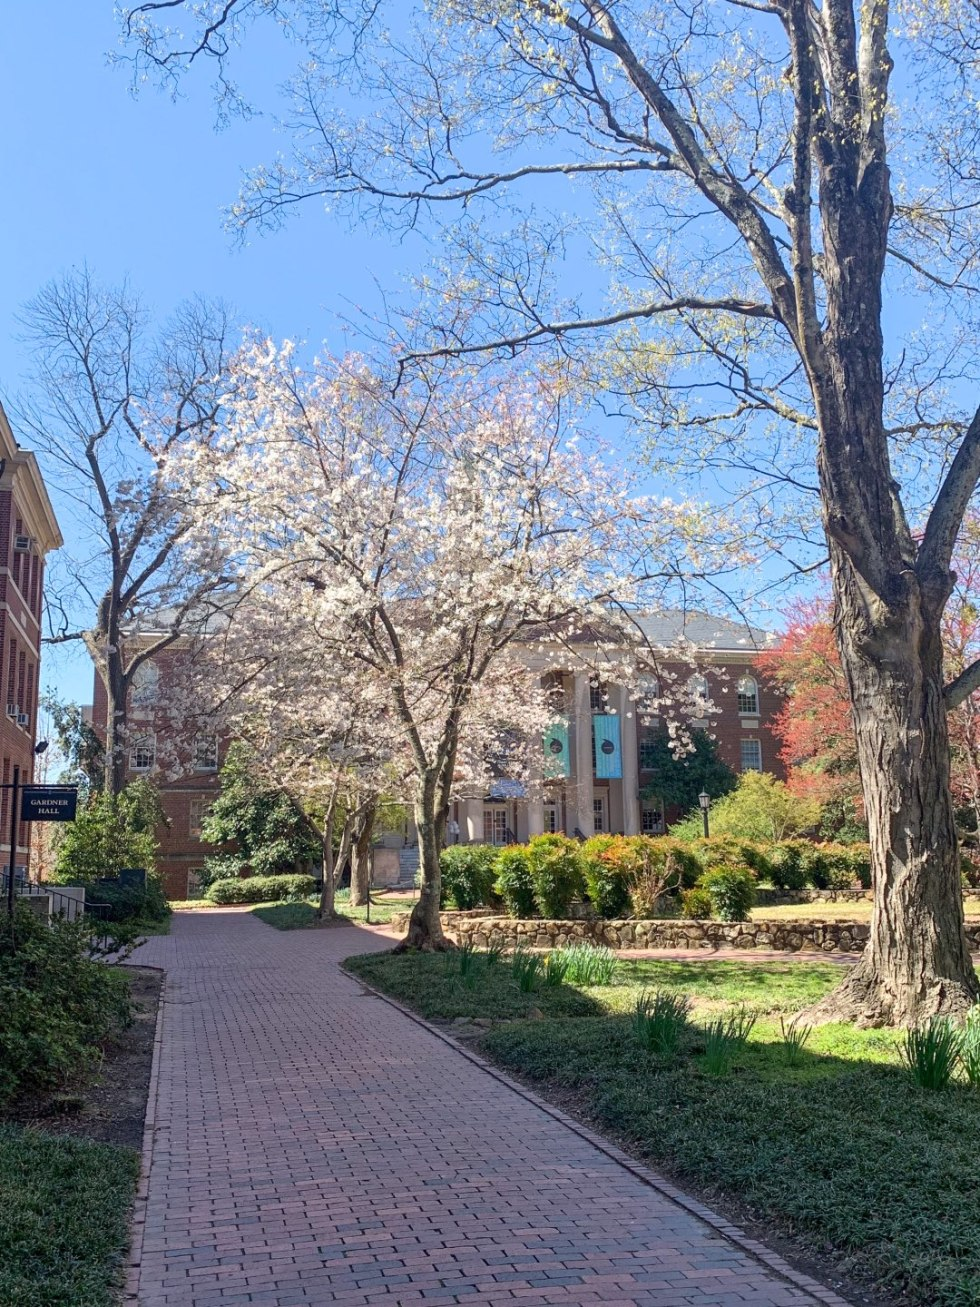 Fun Things to Do in Chapel Hill, NC - I'm Fixin' To - @mbg0112